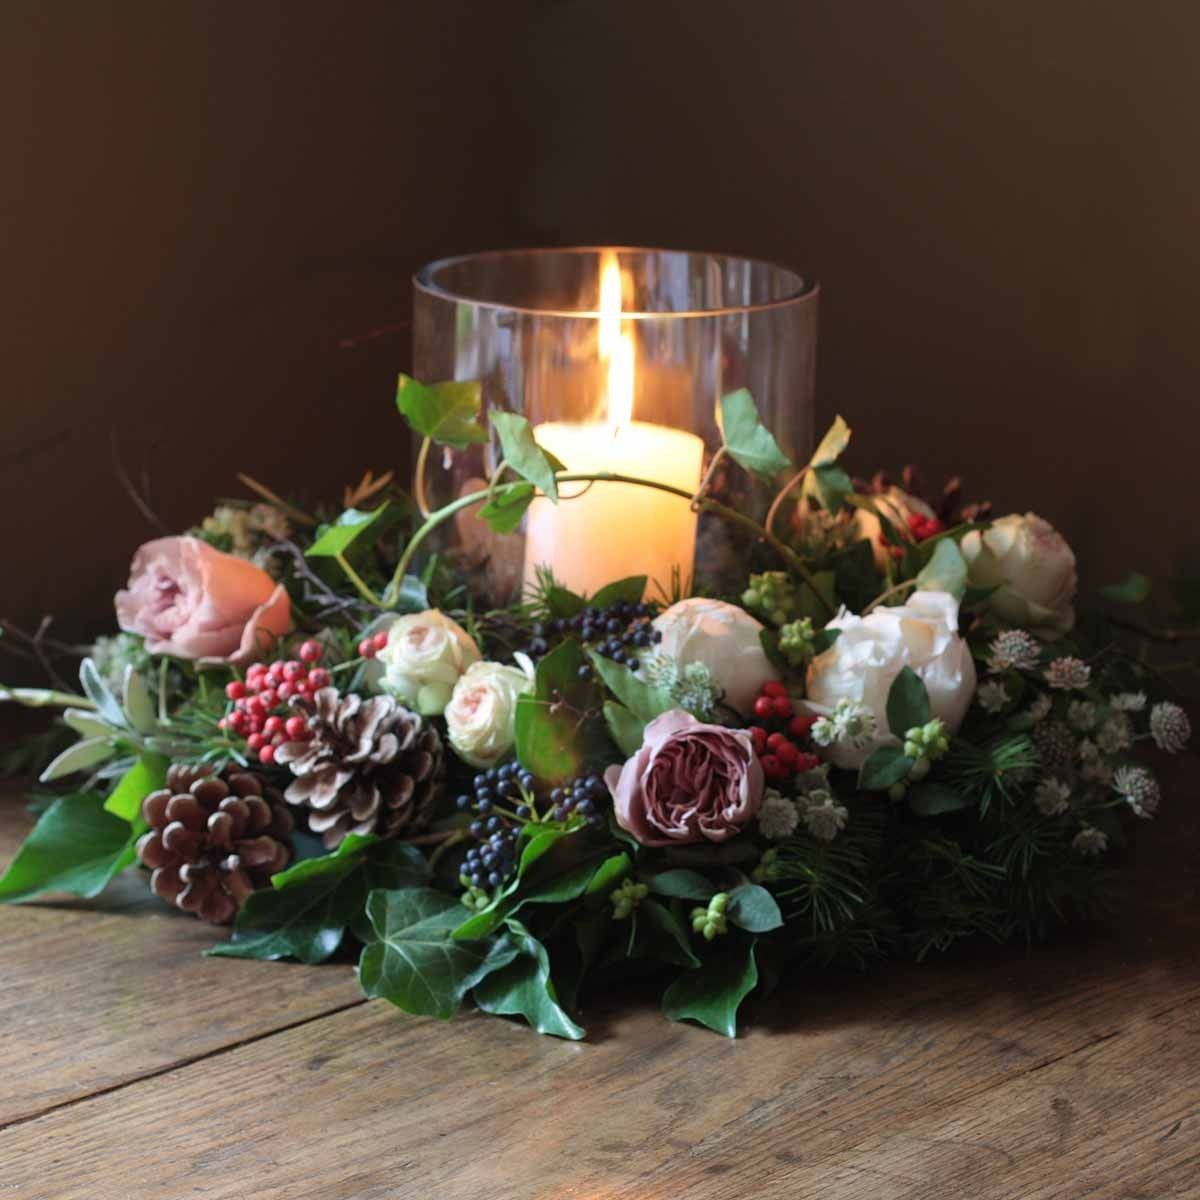 Scented Cream Piaget Caffe Latte And Pavlova Roses Arranged With English Ivy Trails Ber Christmas Candle Decorations Christmas Centerpieces